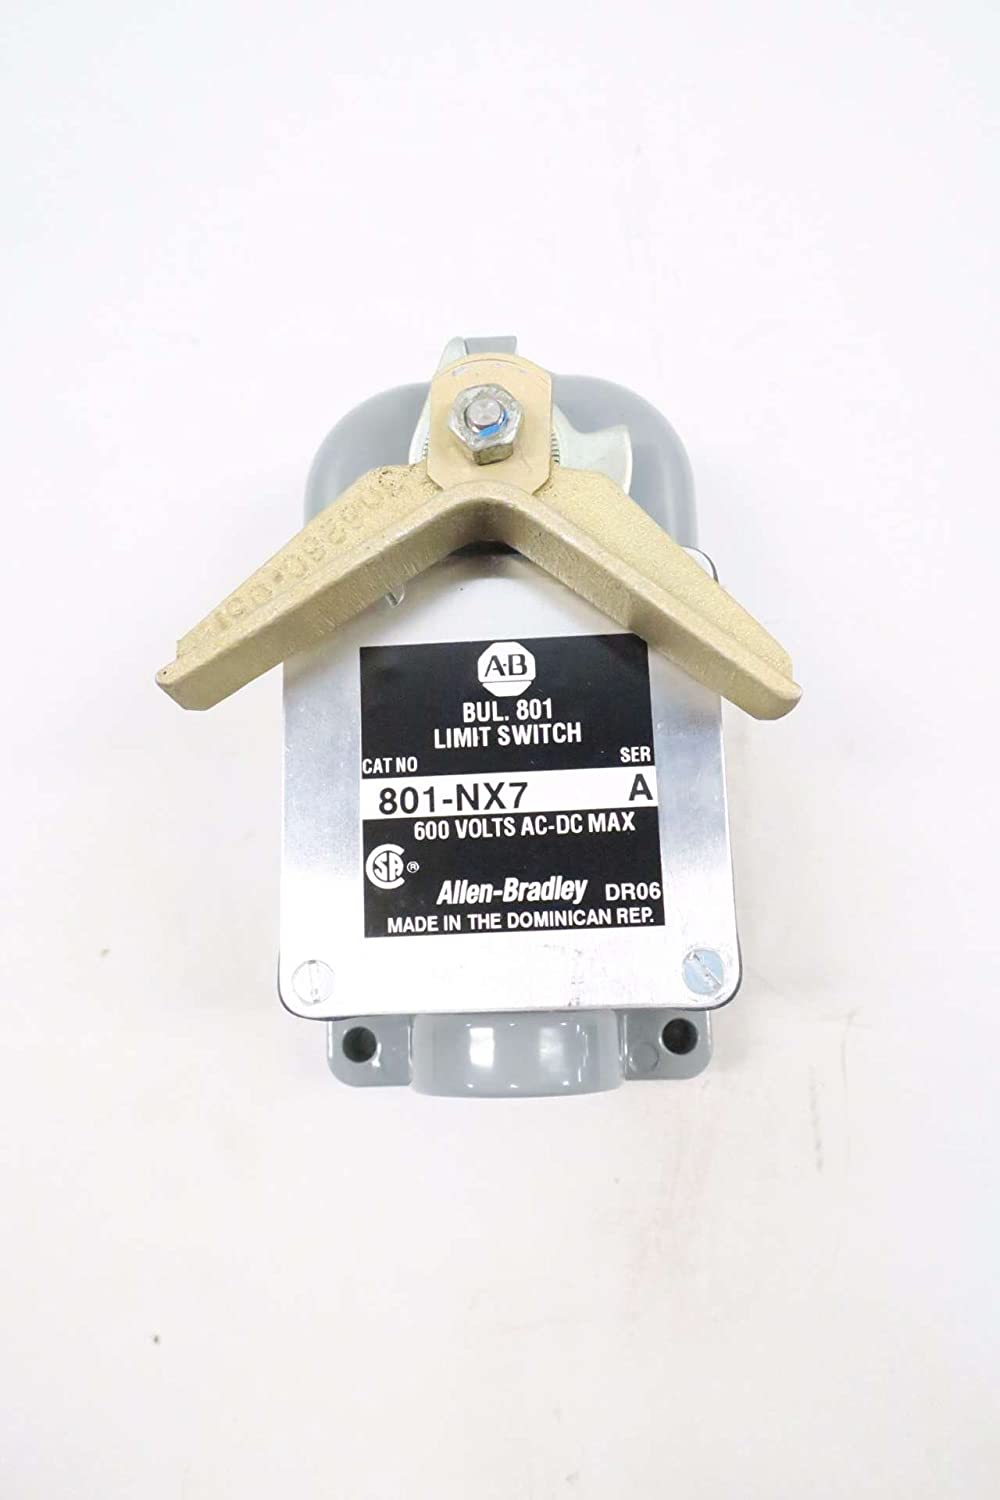 New Allen Bradley 801 Nx7 Limit Switch Ser A D542846 Home Page Gt Switches Sensors Spst Toggle Industrial Scientific